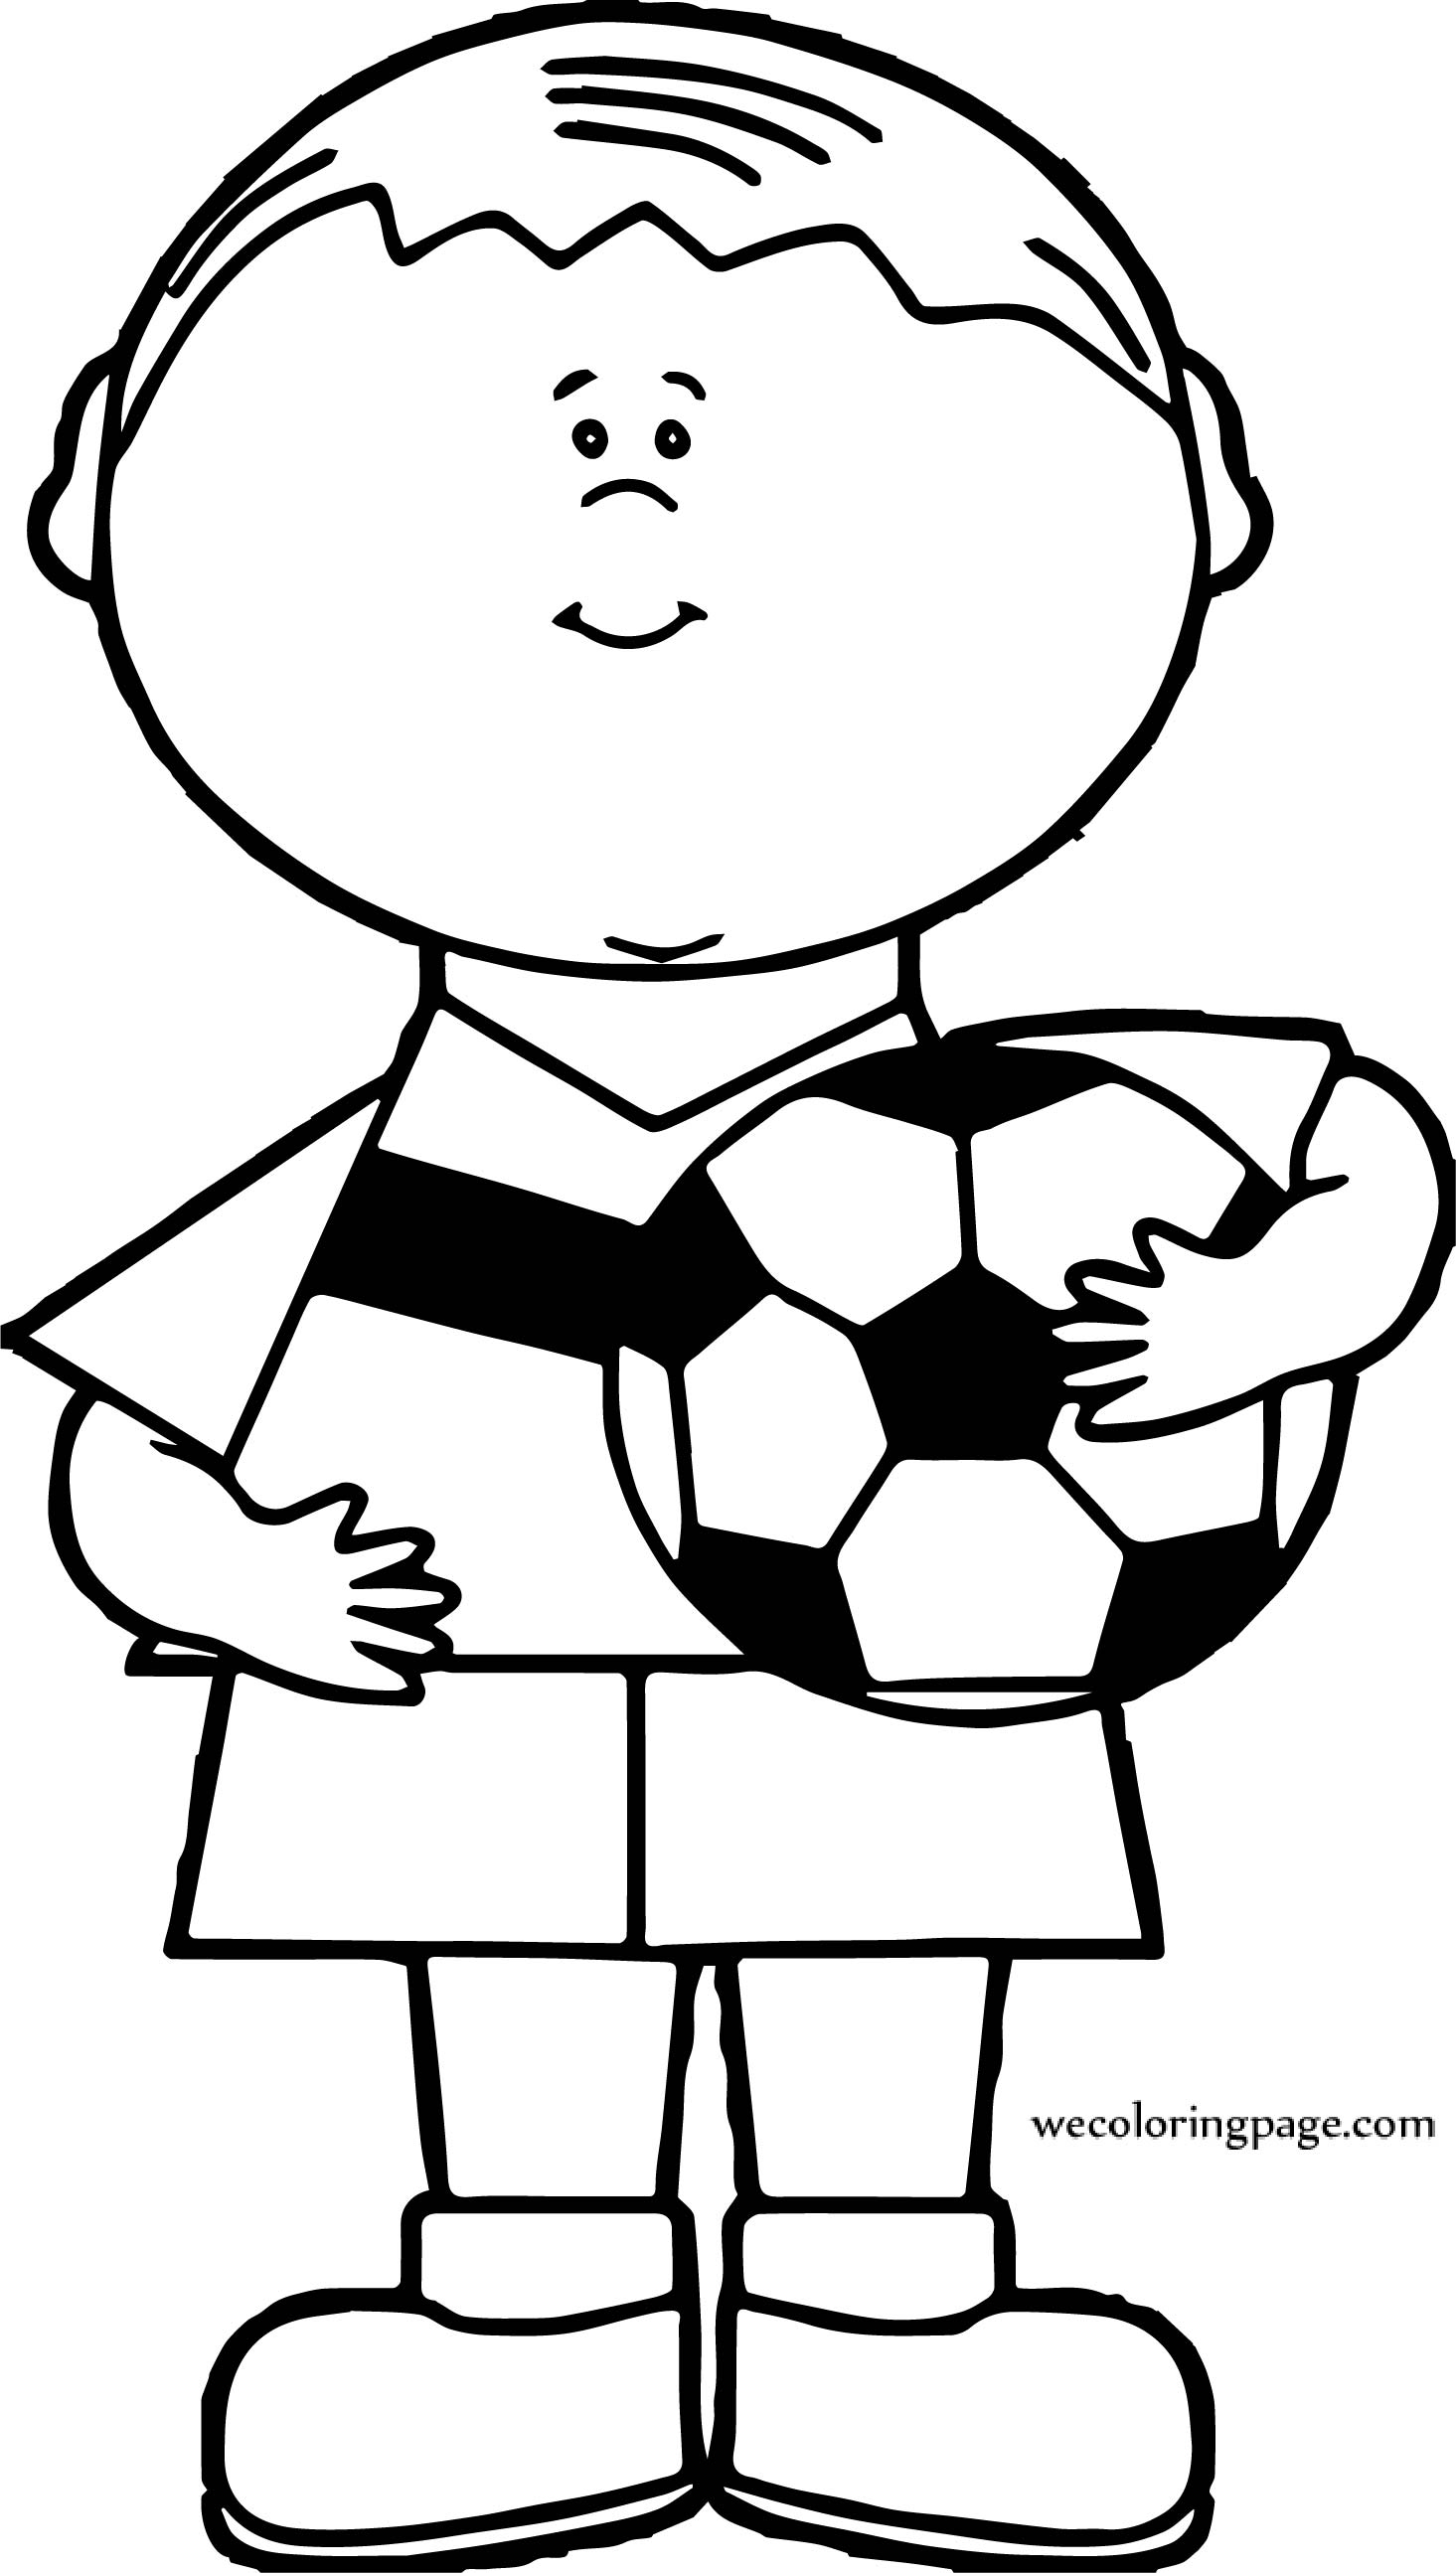 Boy Soccer Ball Holding Coloring